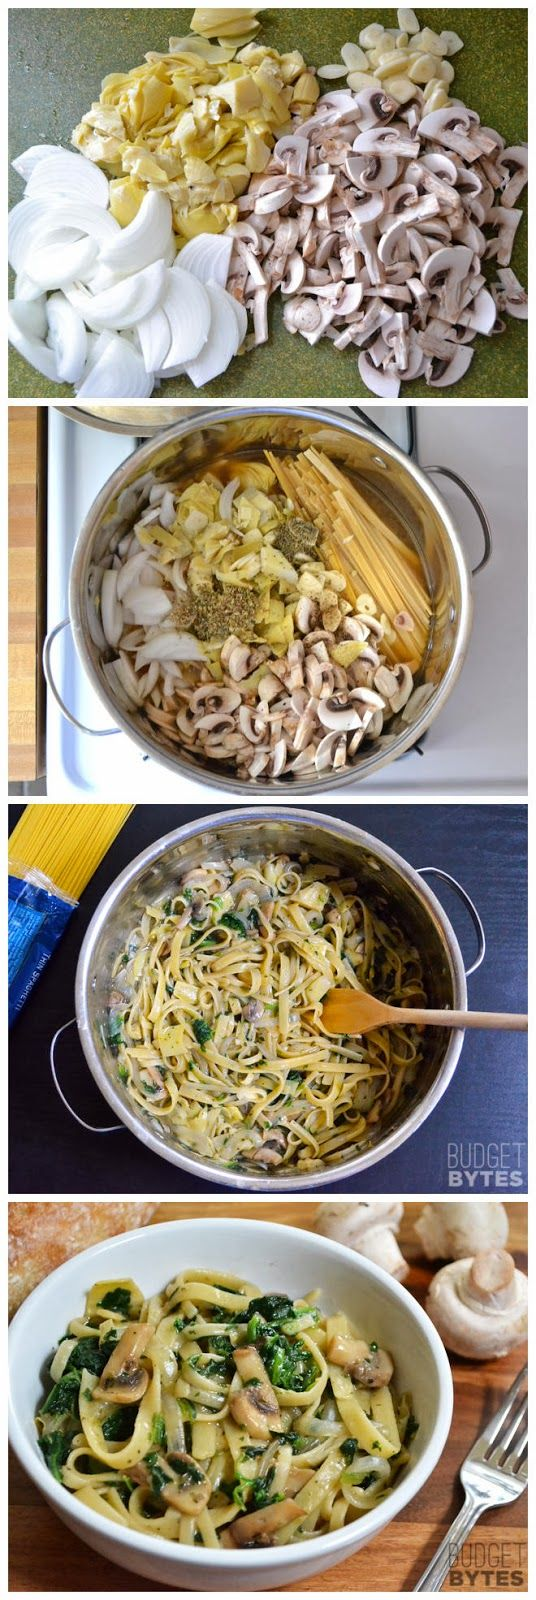 This is your #3 Top Pin in the Vegan Community Board in February:  Spinach  Artichoke Wonderpot - Vegan - 260 re-pins! (You voted with yor re-pins). Congratulations @Ashley Walters Walters Walters Gomes Ⓥ !